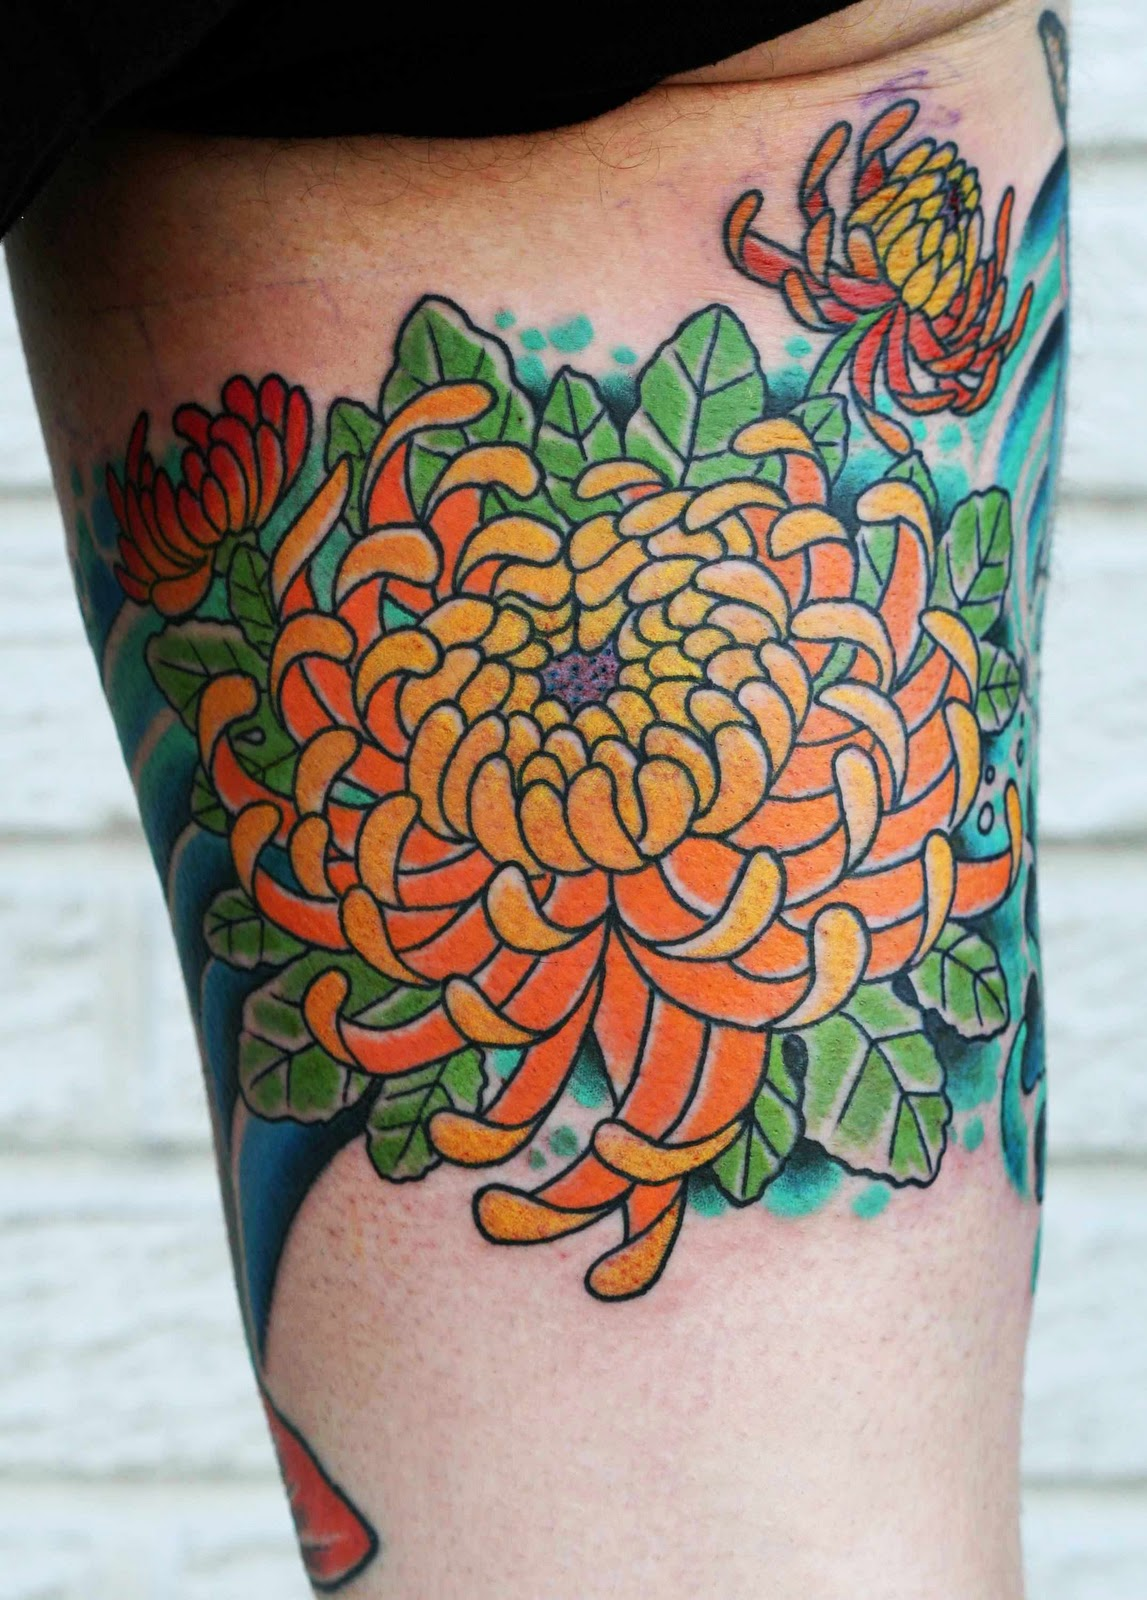 http://4.bp.blogspot.com/-Nq7SrY6FtUo/TvJ8CB1KJBI/AAAAAAAAABU/fw-6ykh4rtE/s1600/Chrysanthemum+Tattoo+Design+And+Symbols+on+arm.jpg